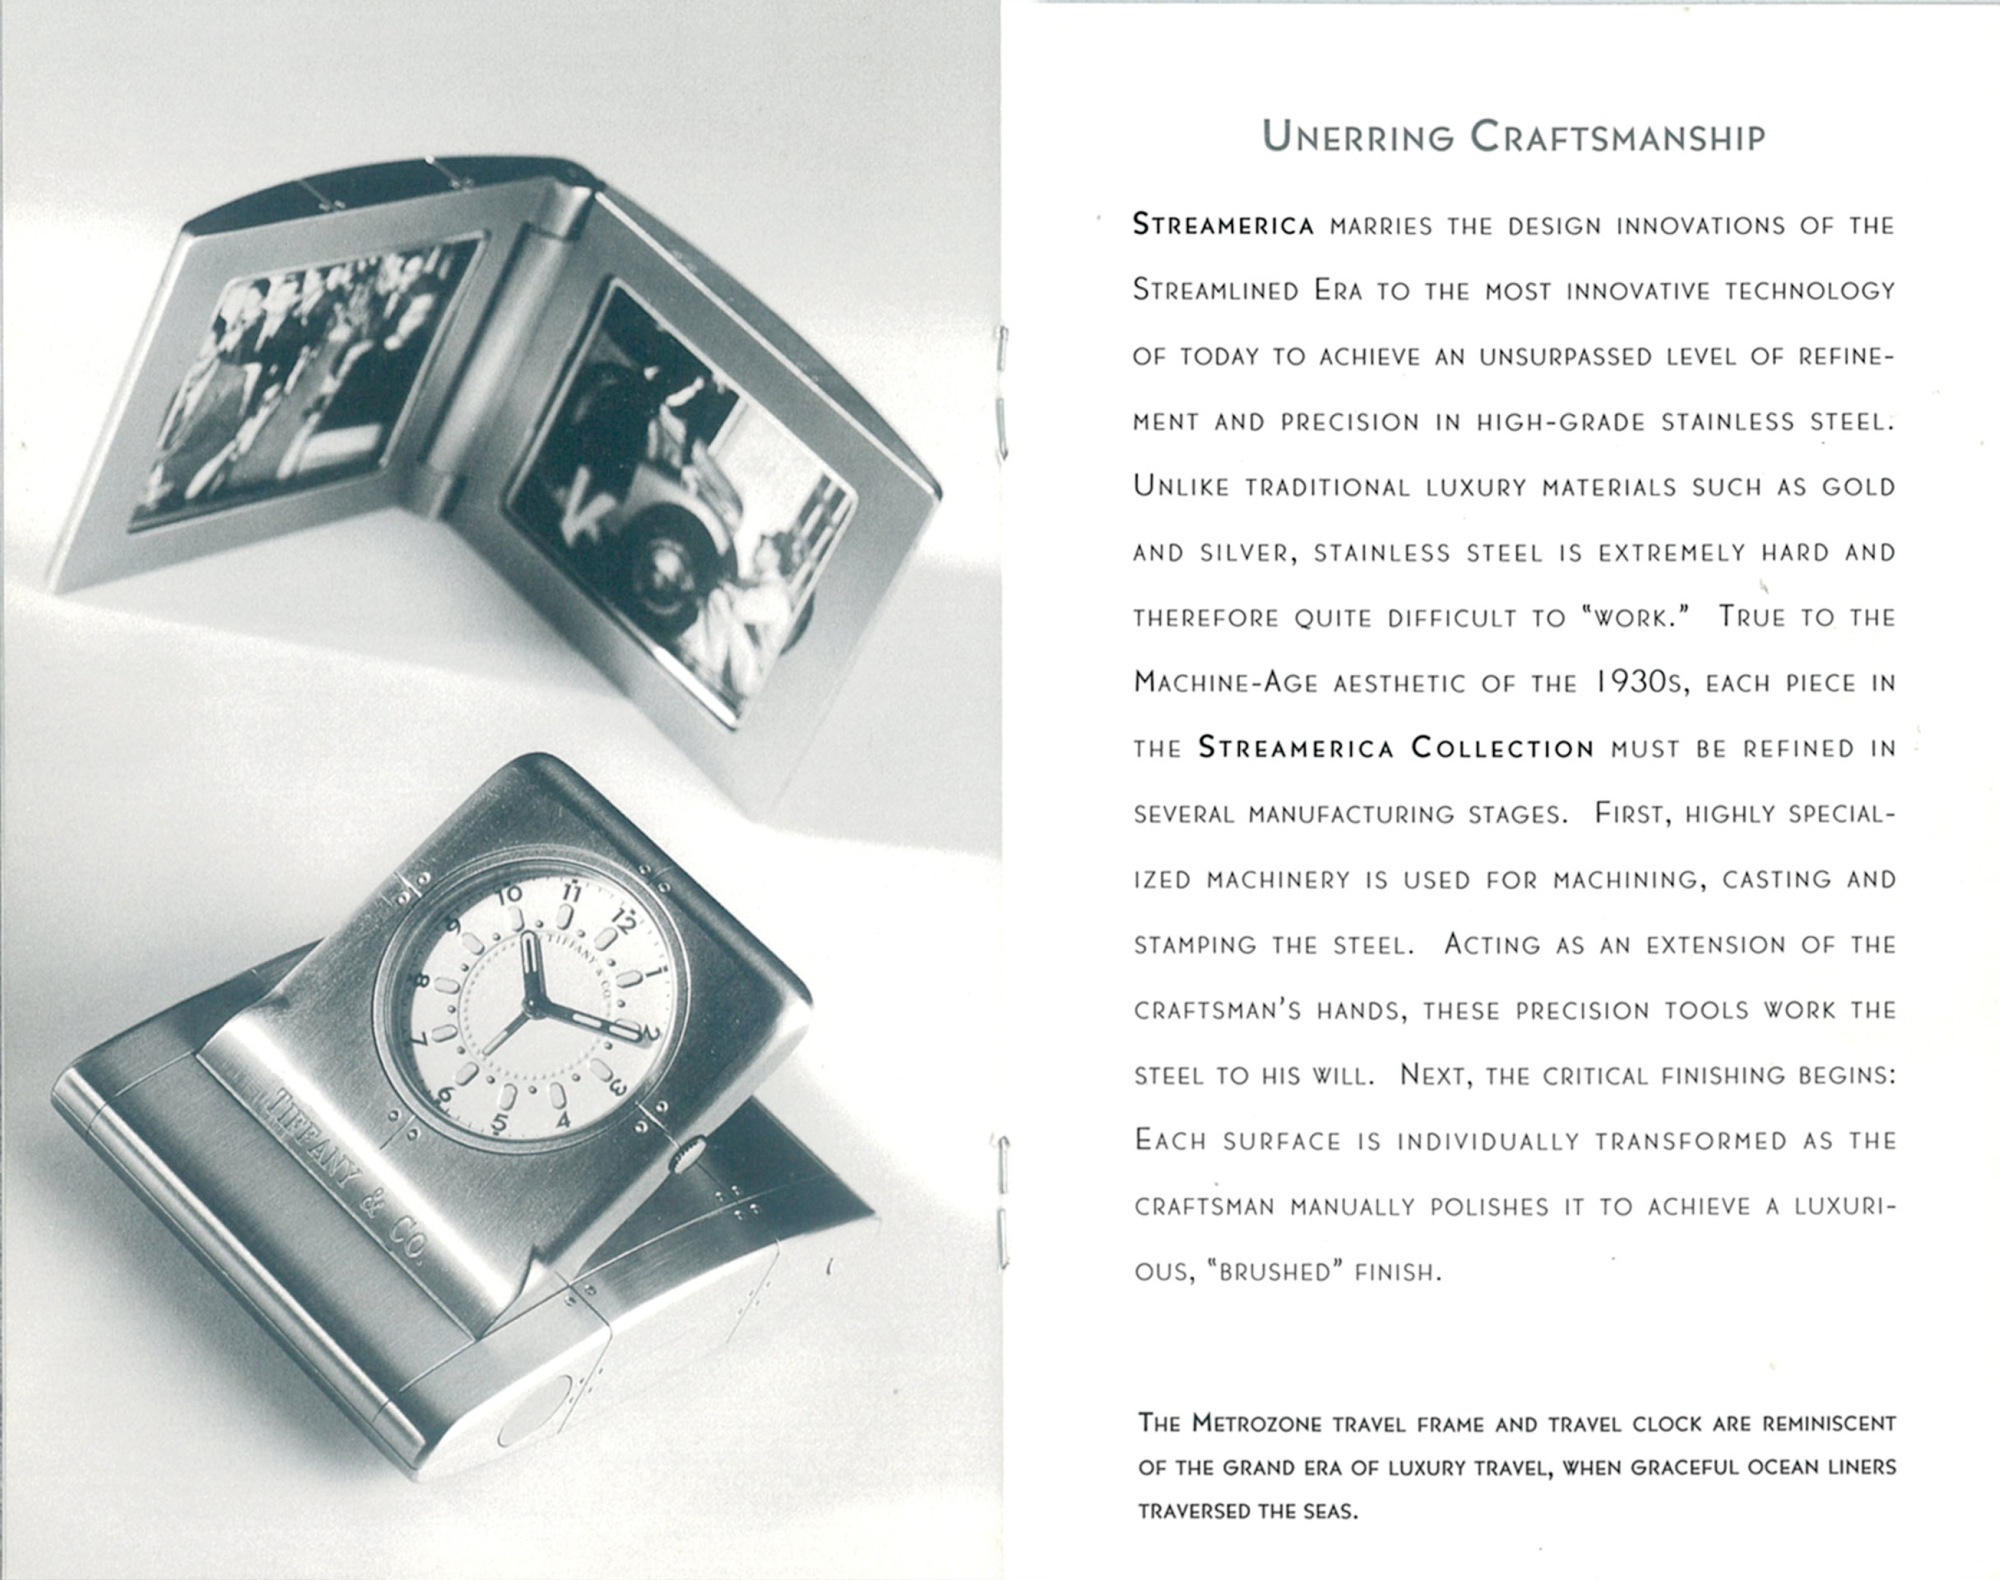 Streamerica Tiffany & and Co. Metrozone Travel Frame Desk Clock Stainless Steel Ad advertising Blue Book